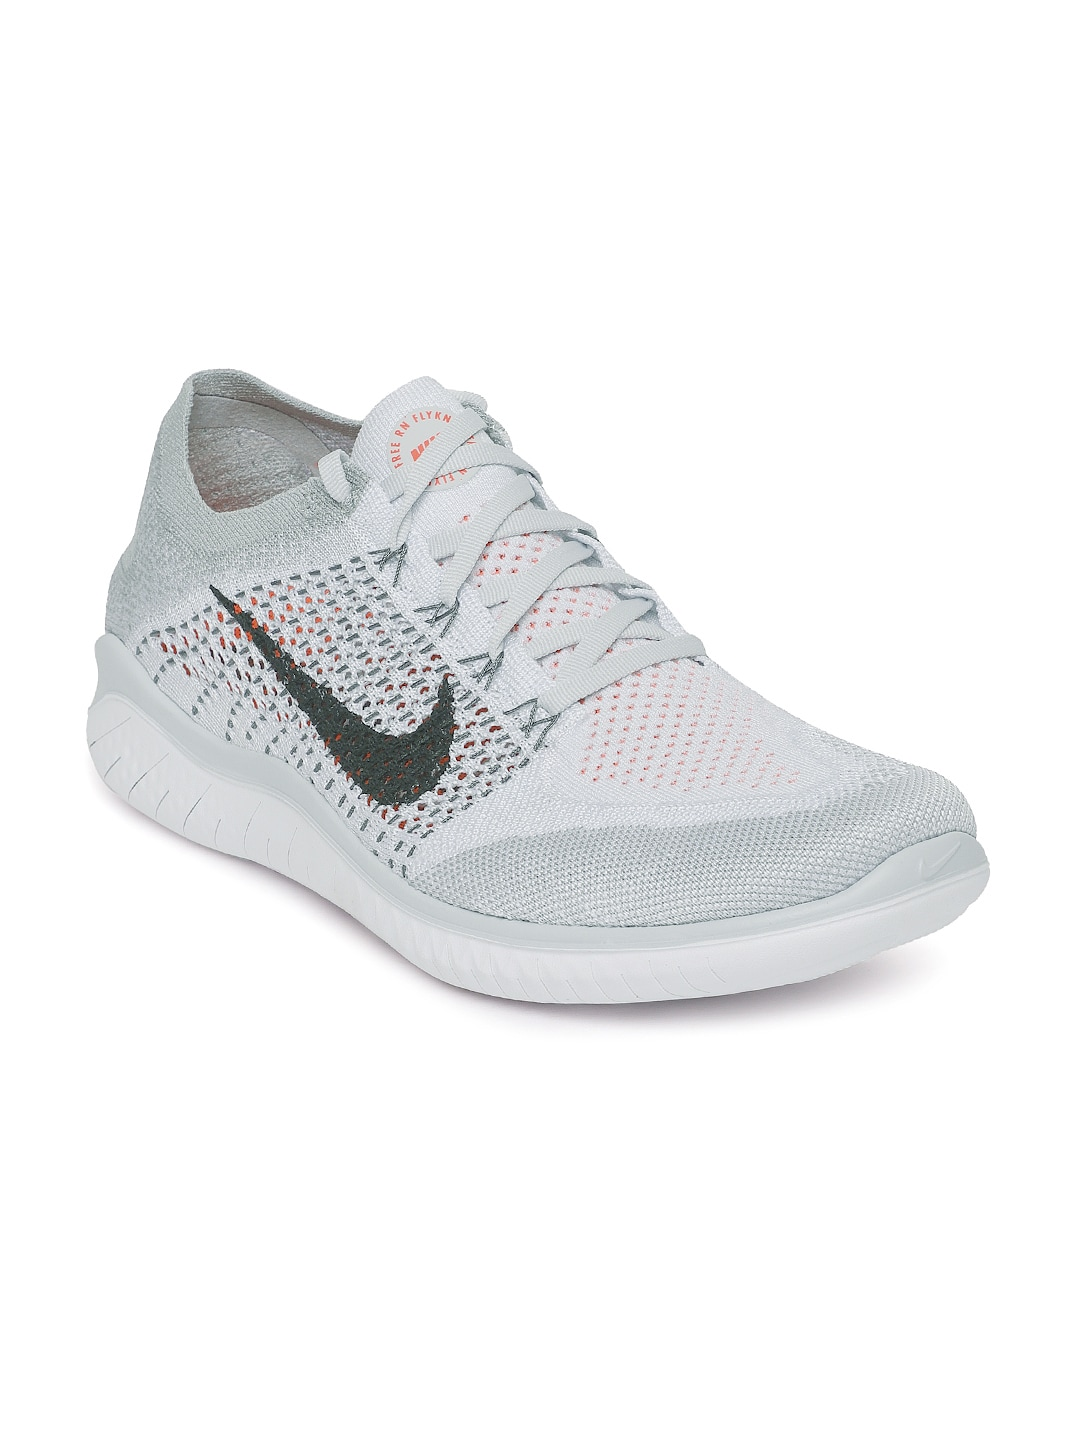 d8f42c26426c Nike Free 2 - Buy Nike Free 2 online in India